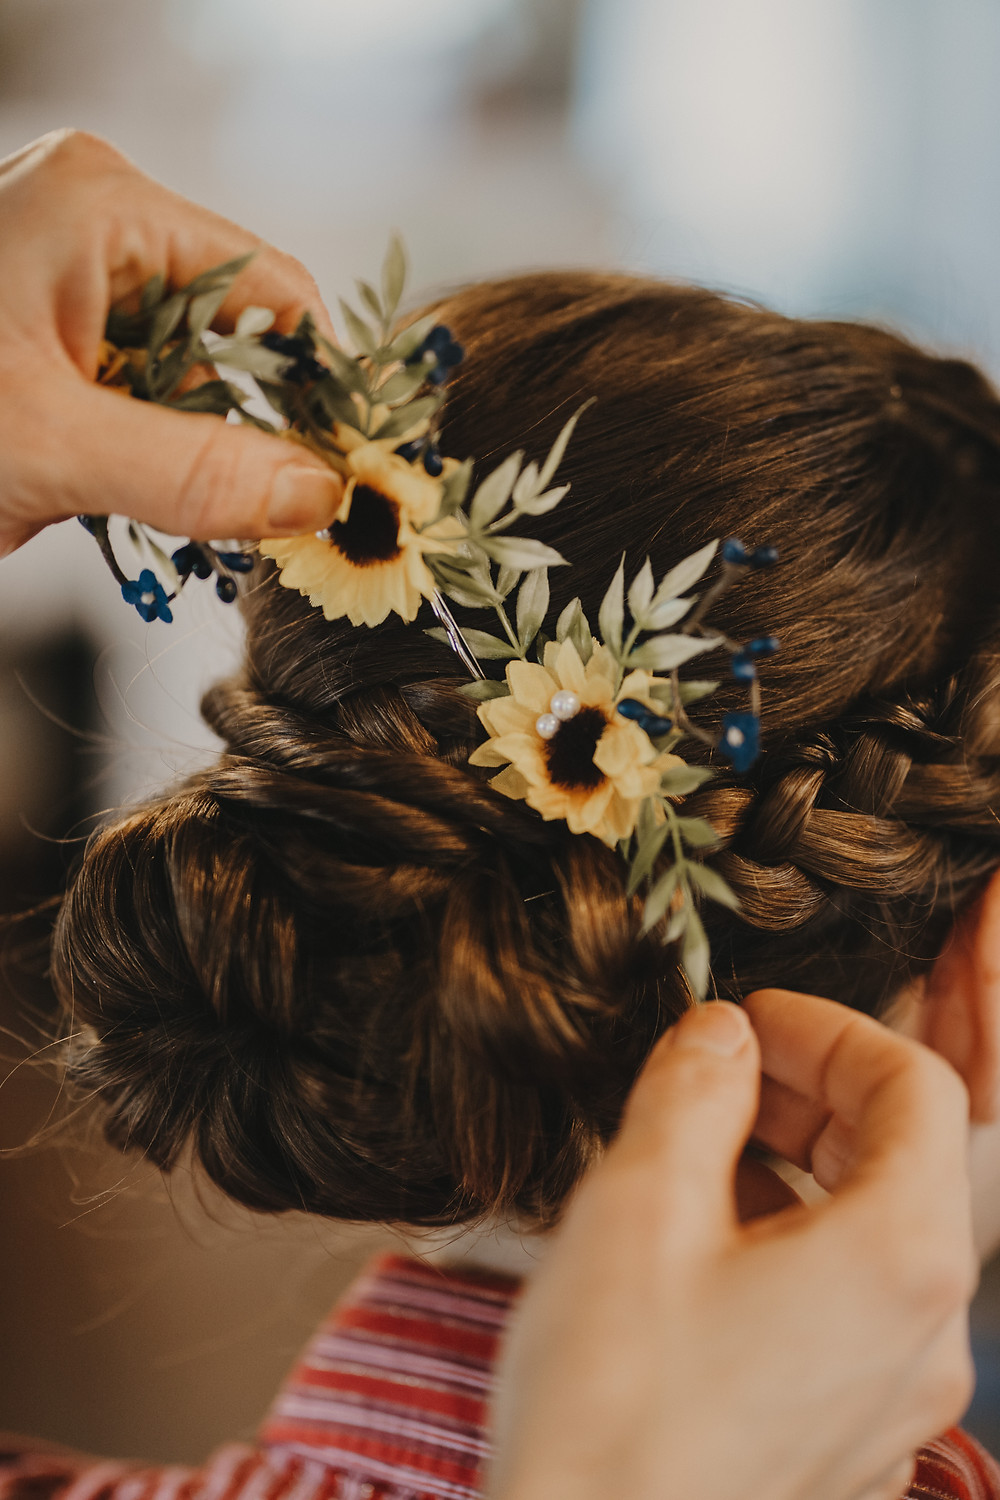 wedding hair stylist adds sunflowers to bride's updo